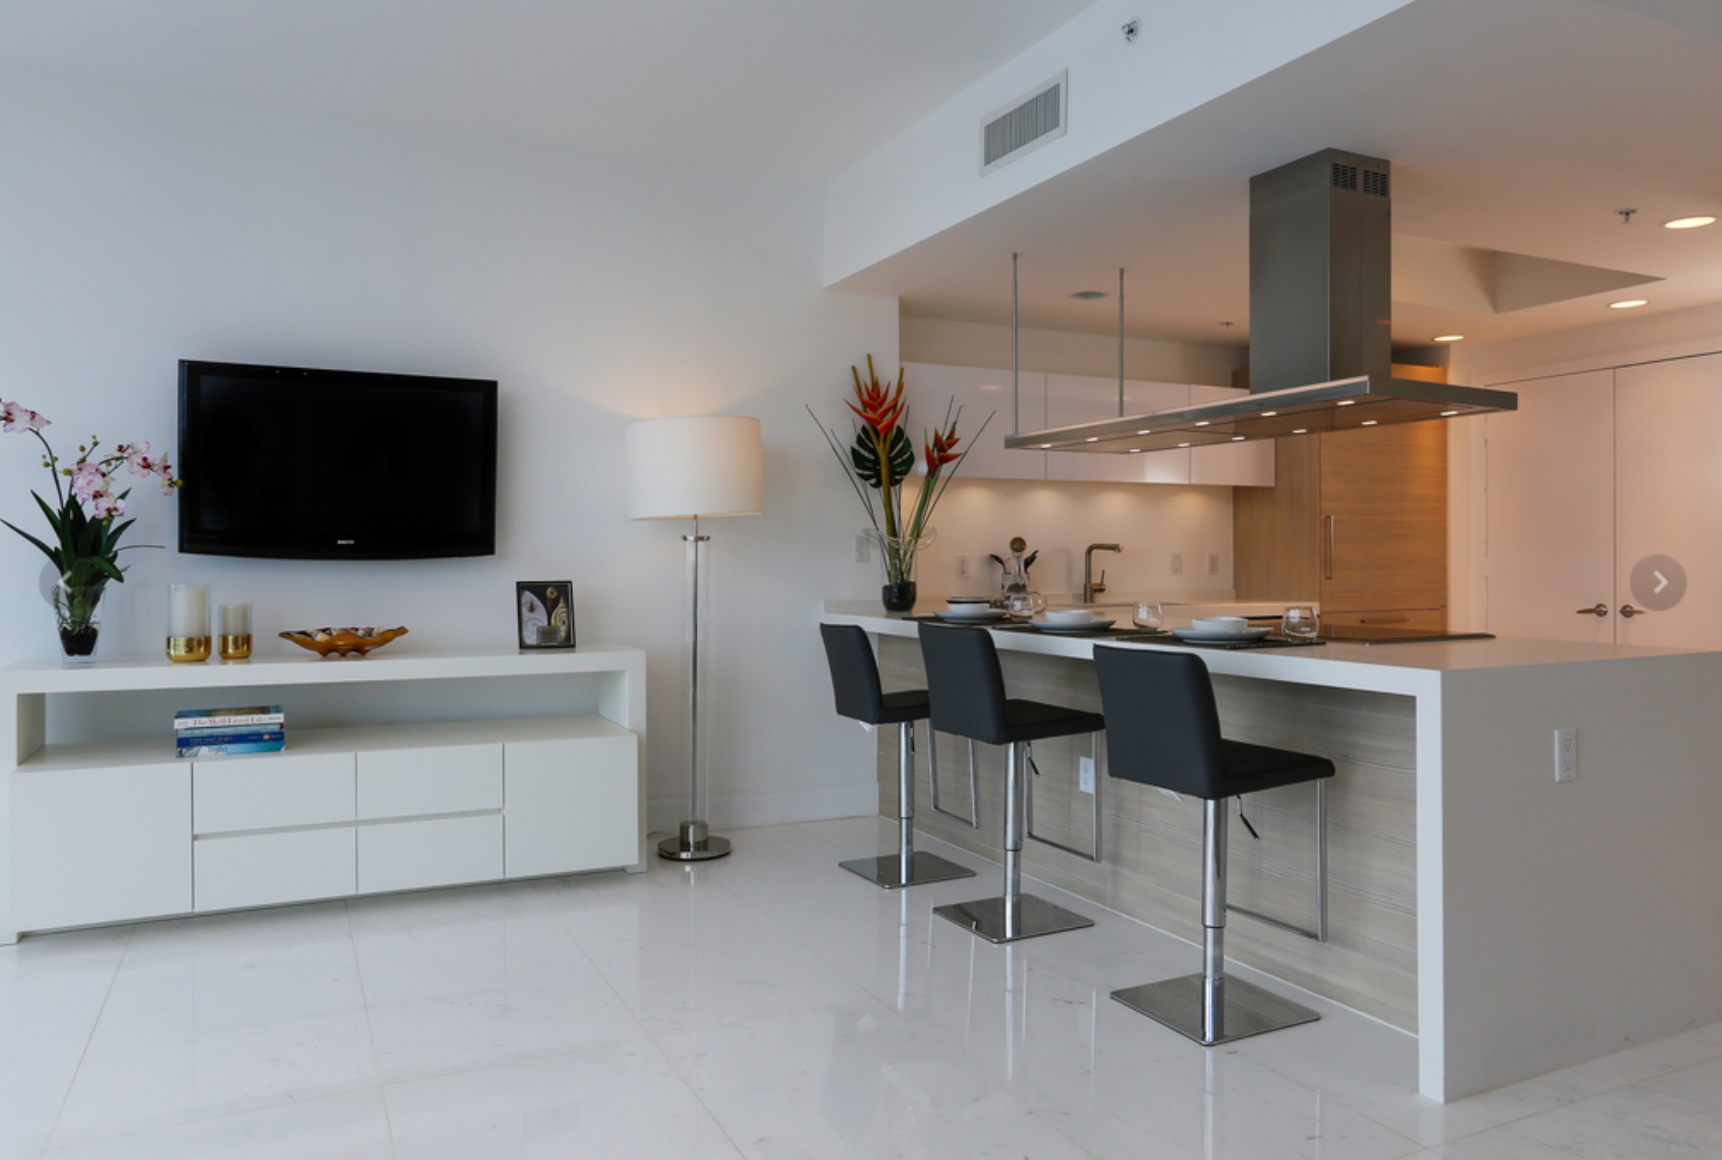 A very modern kitchen design by Kevin